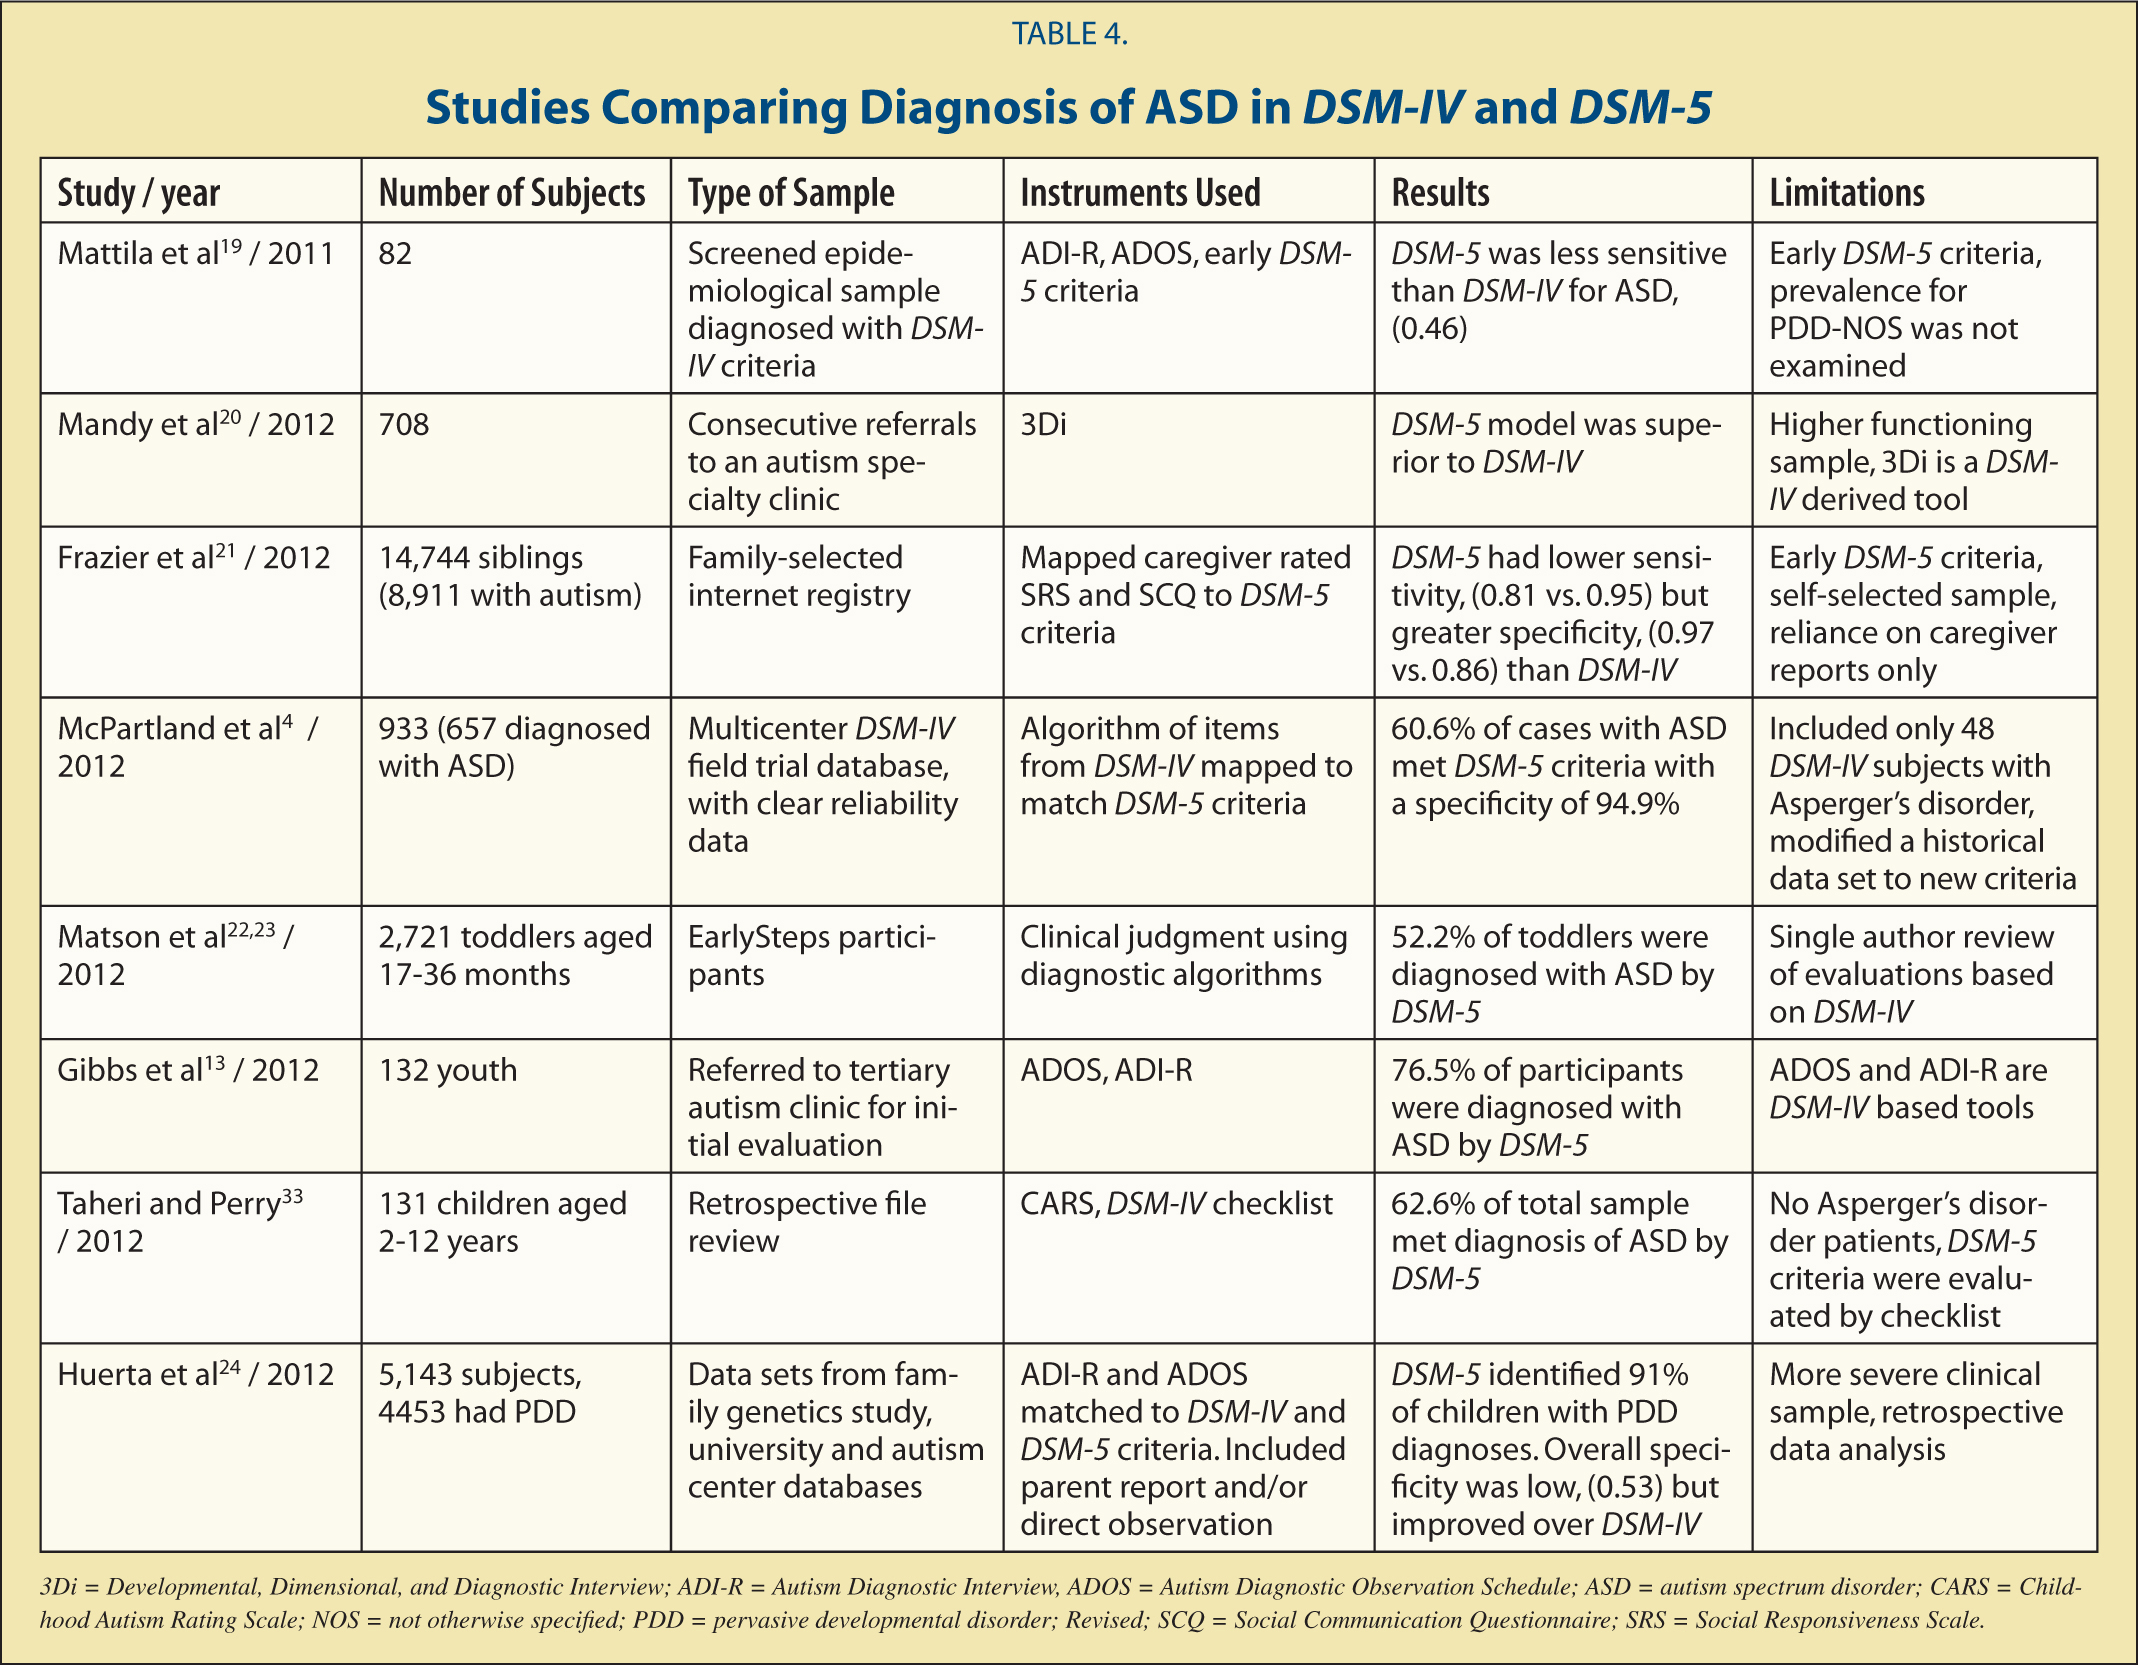 Studies Comparing Diagnosis of ASD in DSM-IV and DSM-5